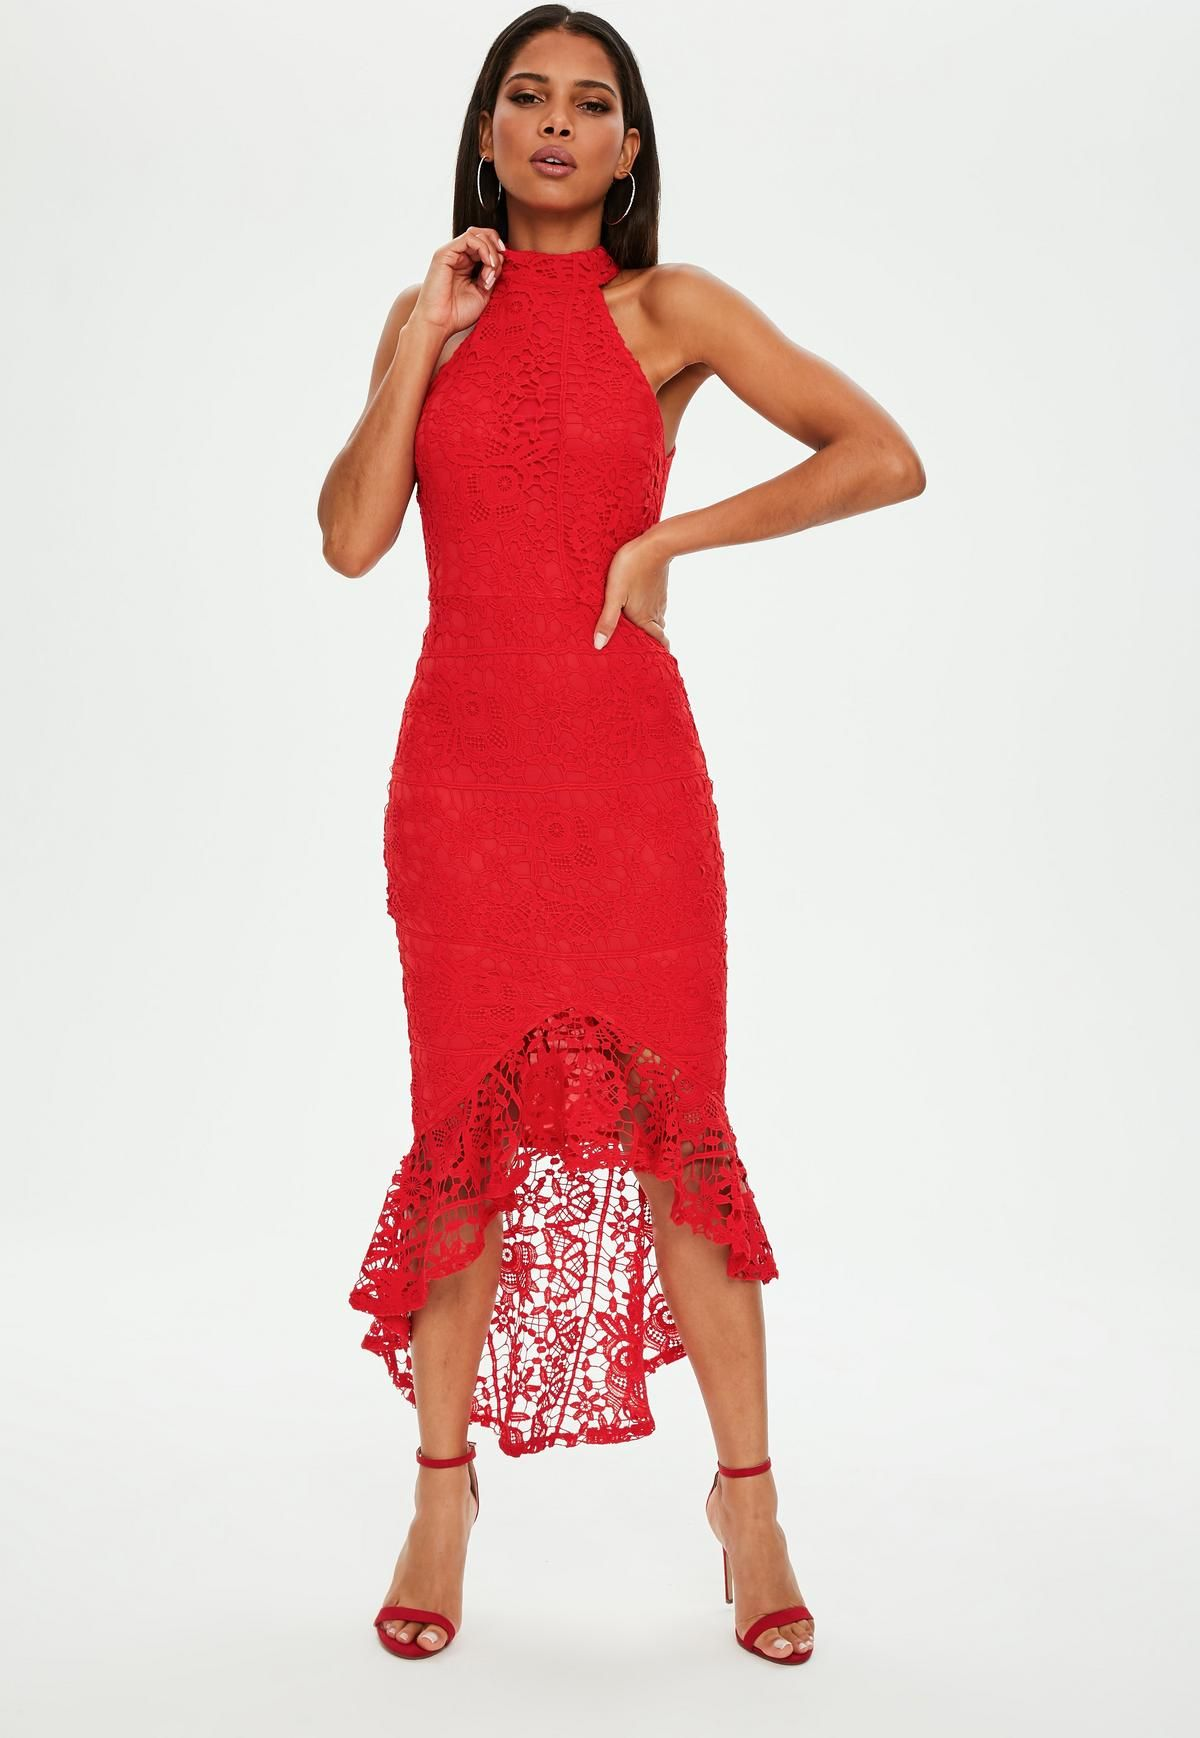 064c6a3cdd Red Lace High Neck Fishtail Midi Dress